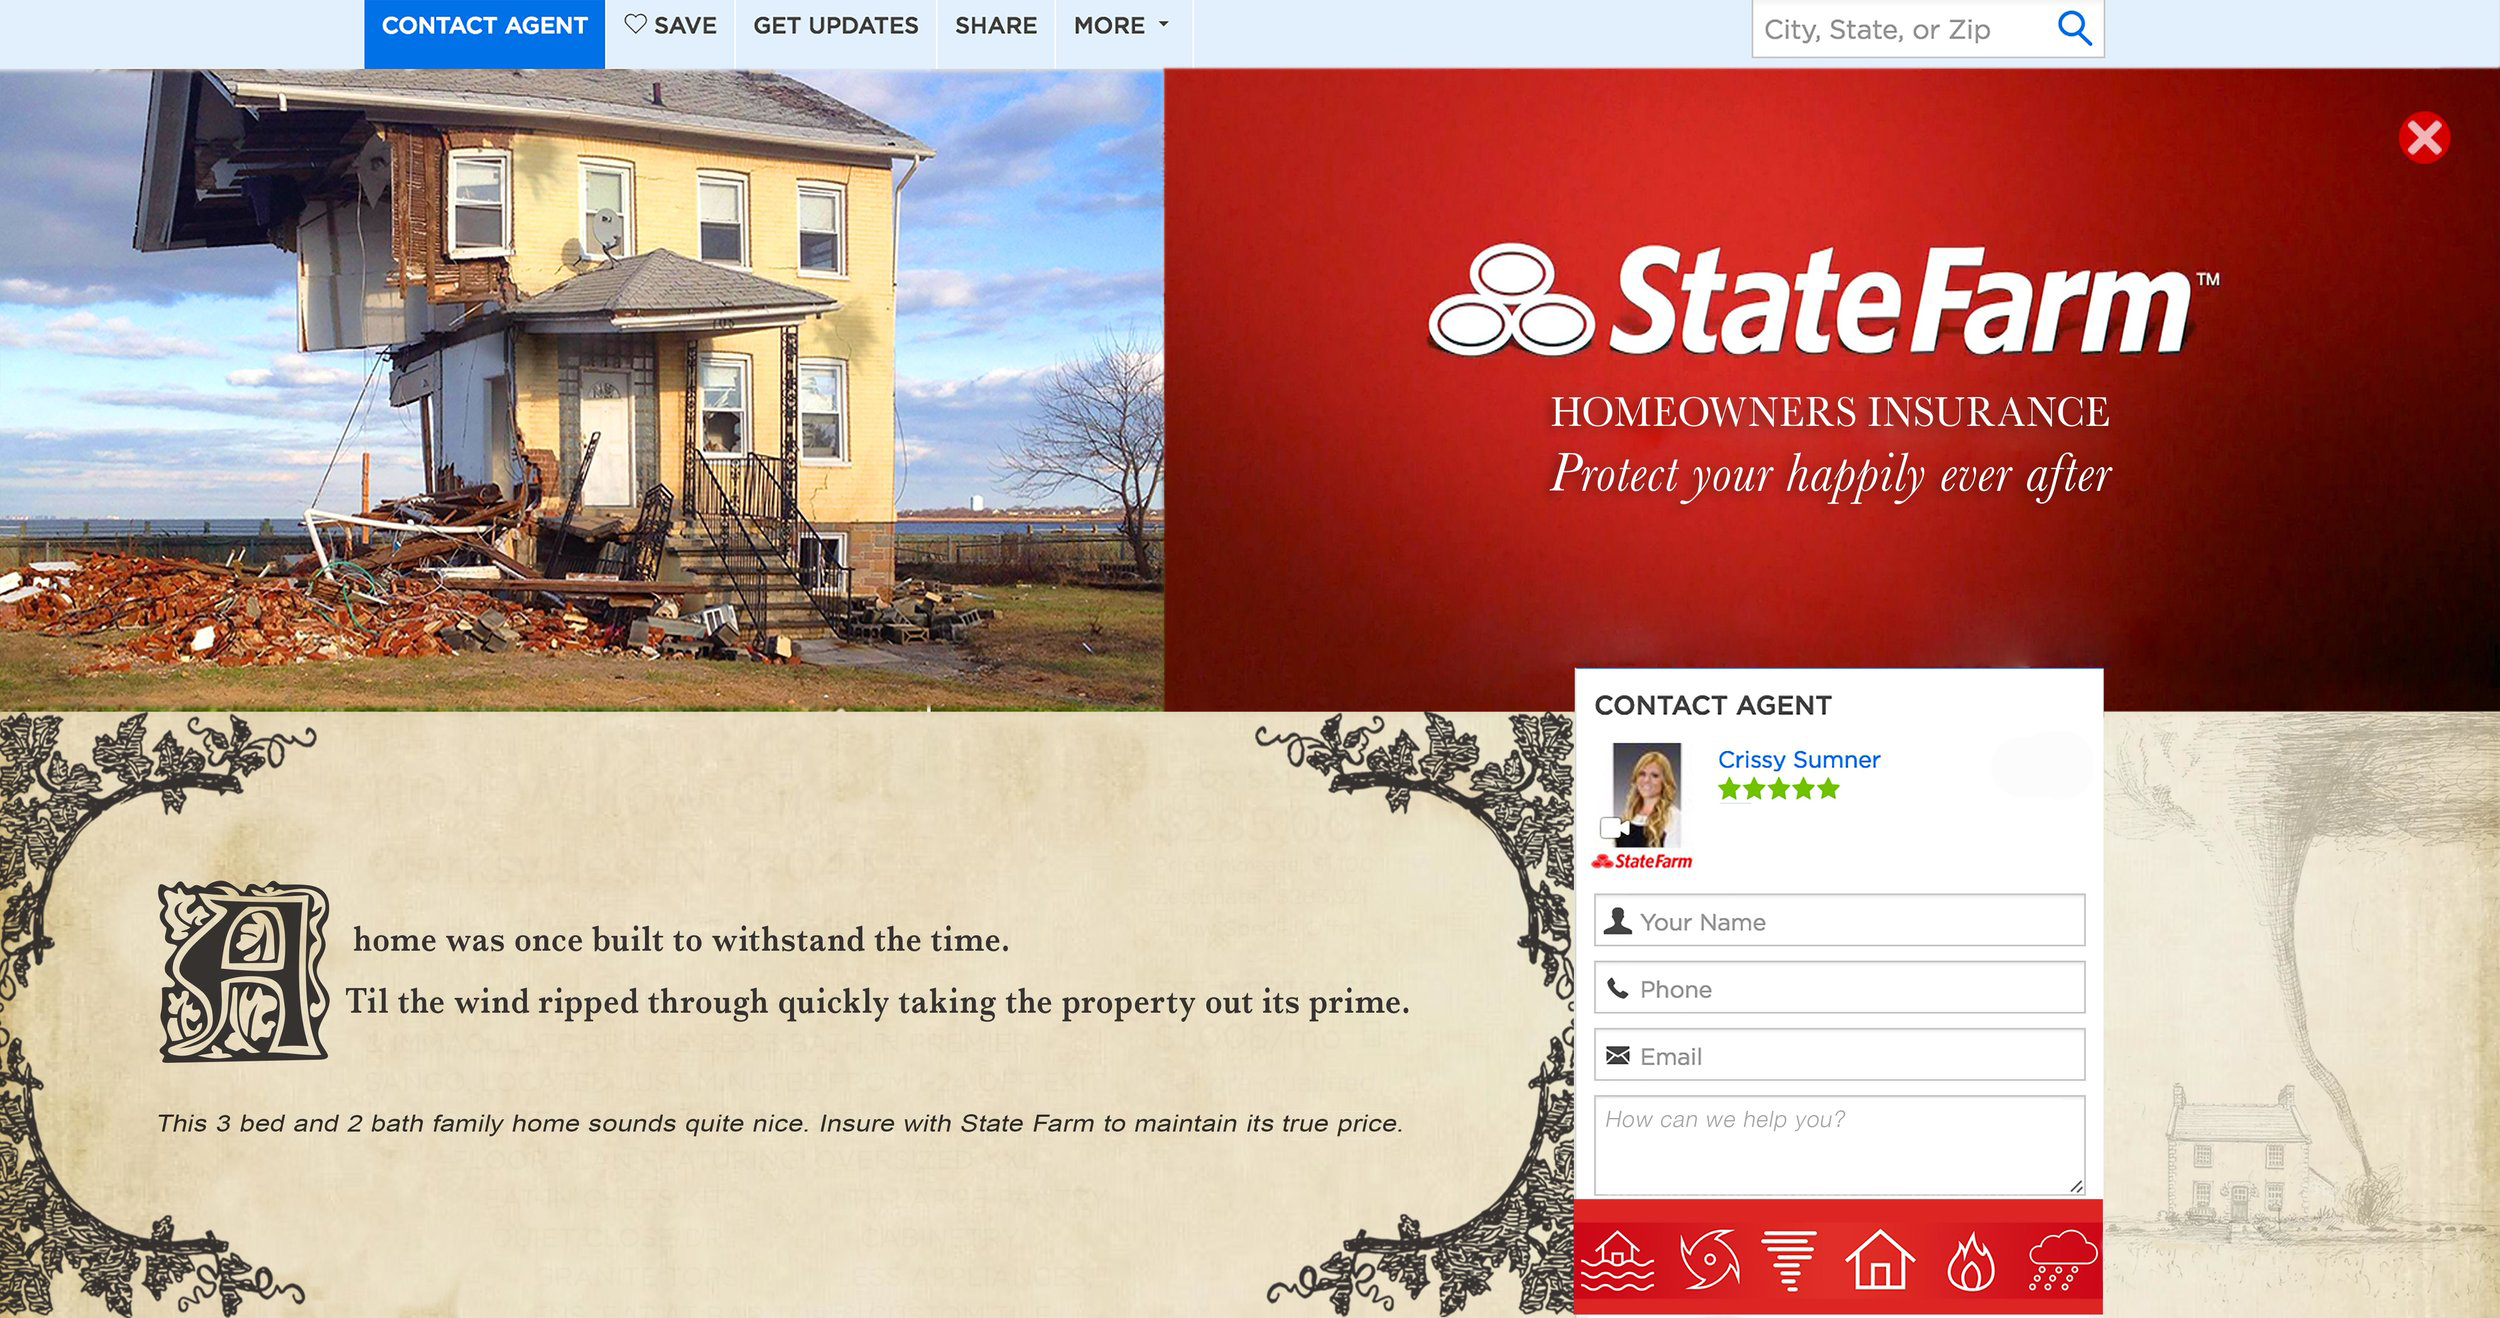 state+farm+page+take+over+.png